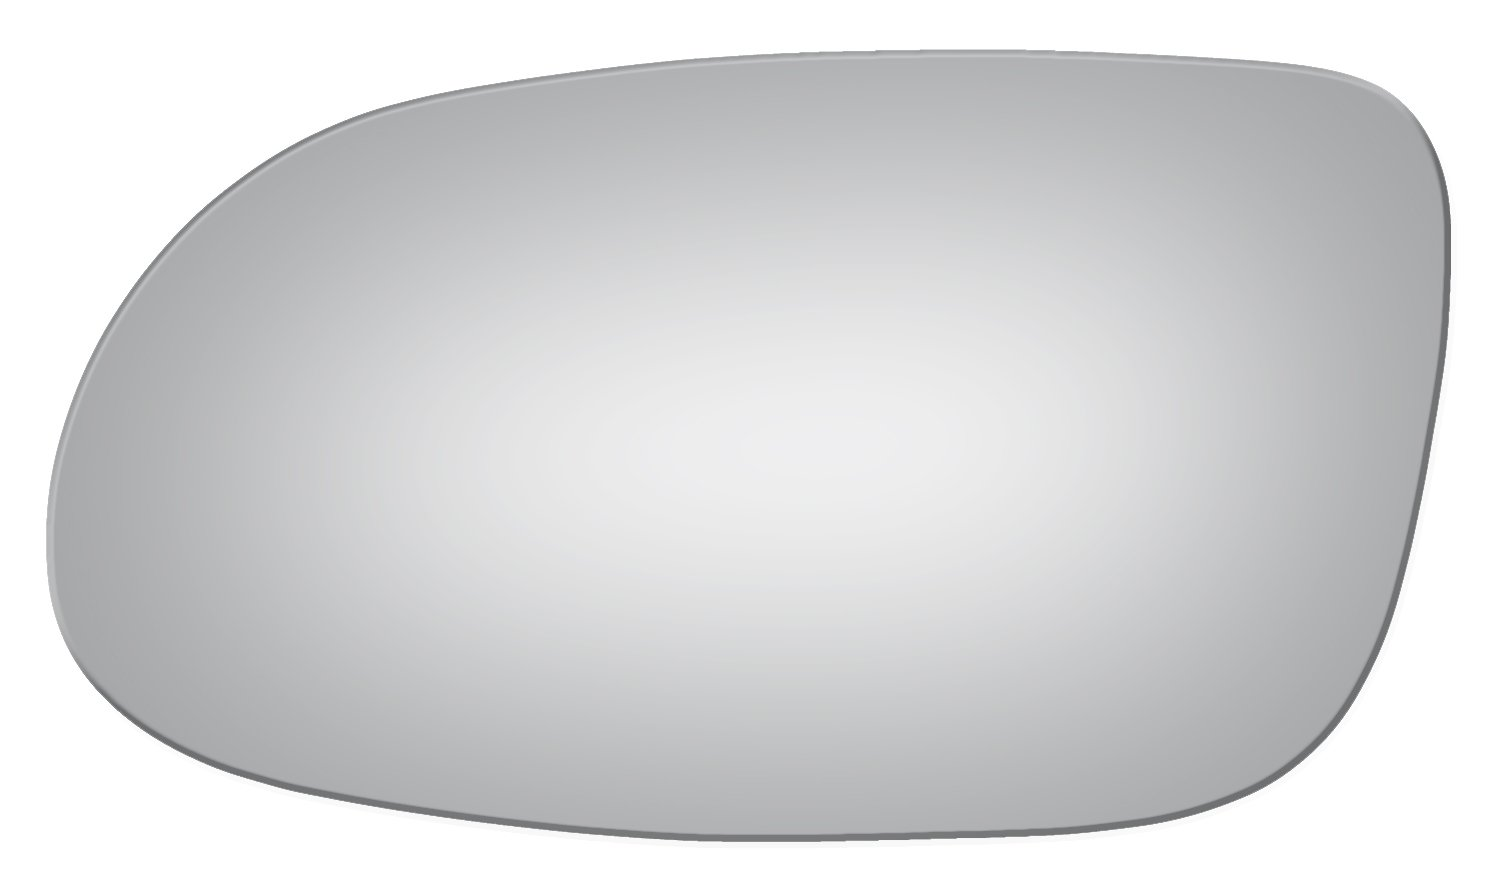 Burco 2873 Redi Cut Left Driver Side Replacement Mirror Glass for 1998-2009 Mercedes-Benz CLK Series & 1999-2004 SLK Series